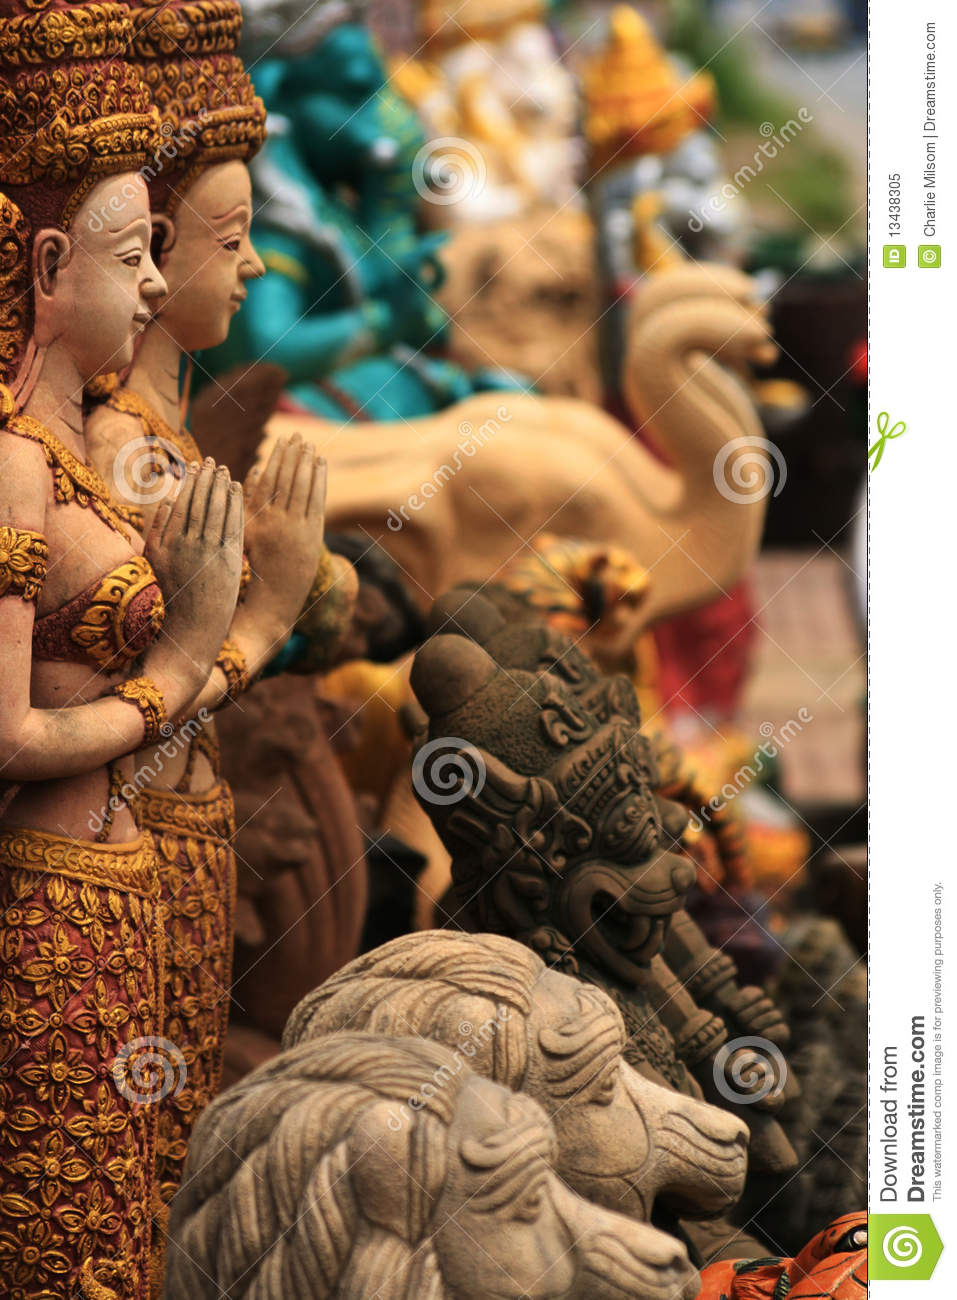 sandstone buddhist singles A free online dating & social networking site specifically for buddhist singles and those interested in buddhism browse the buddhist groups to find others based on the school of buddhism they follow.